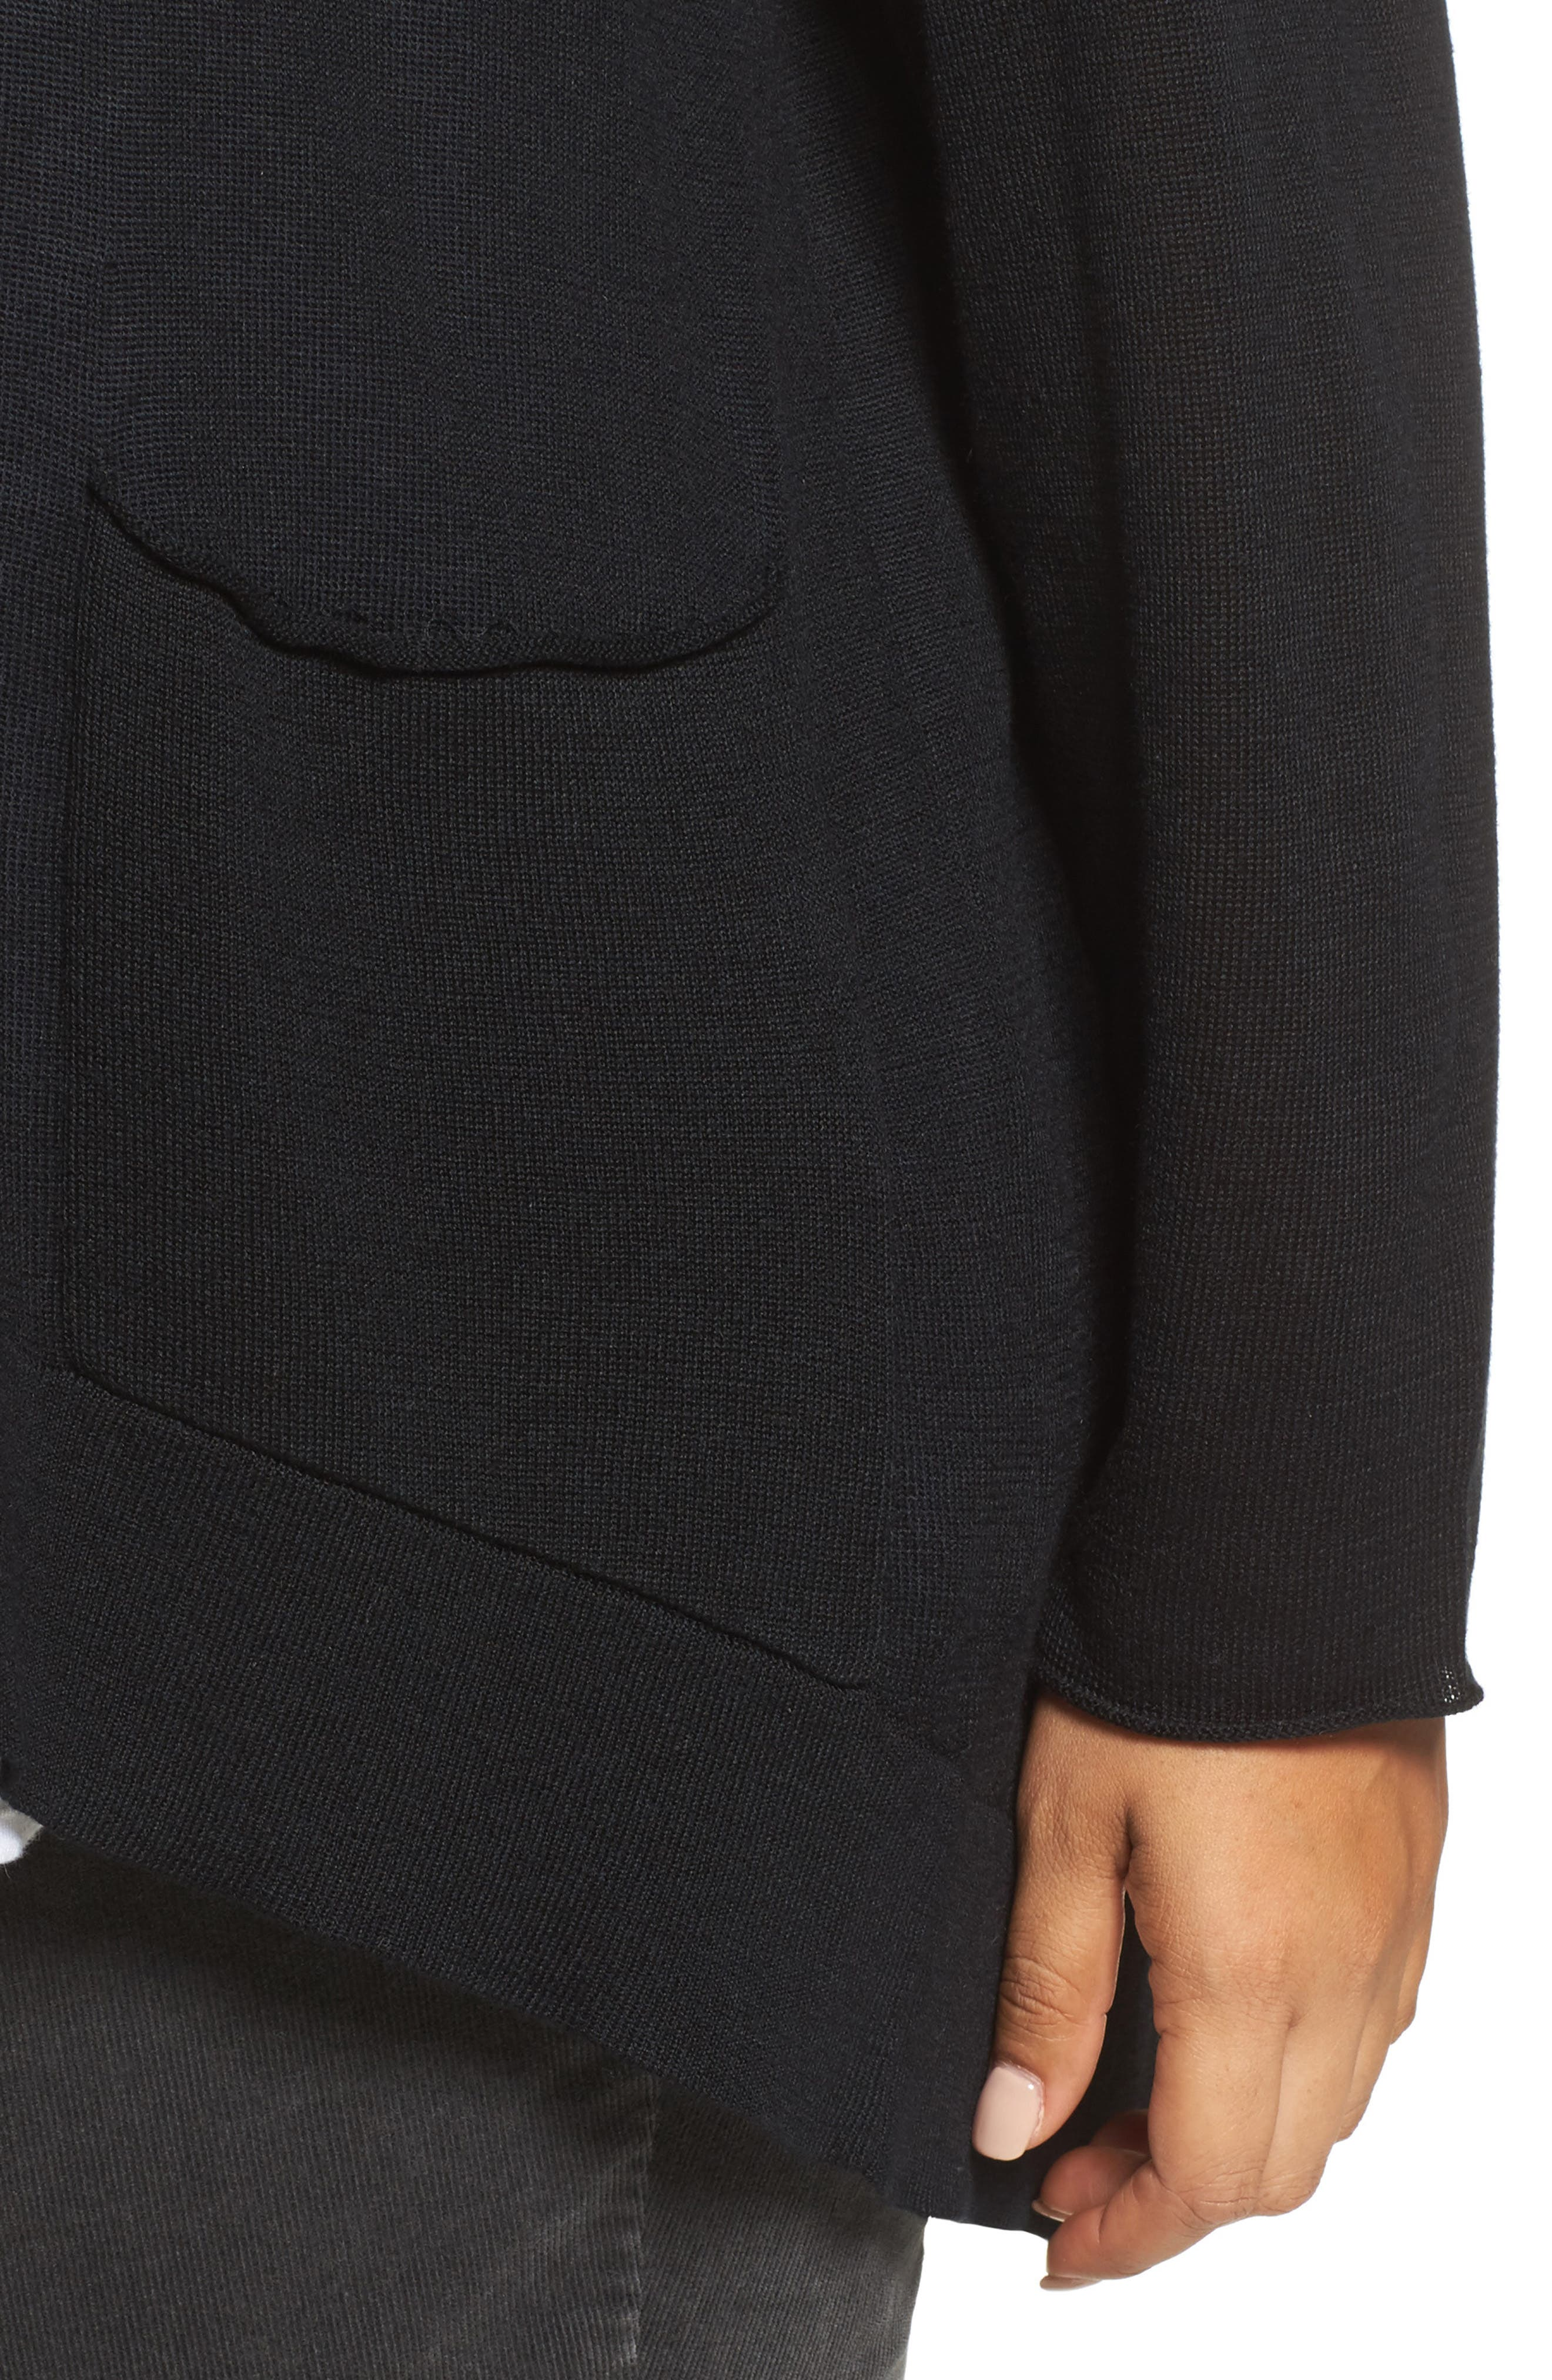 Slouchy Tencel<sup>®</sup> Blend Cardigan,                             Alternate thumbnail 4, color,                             001